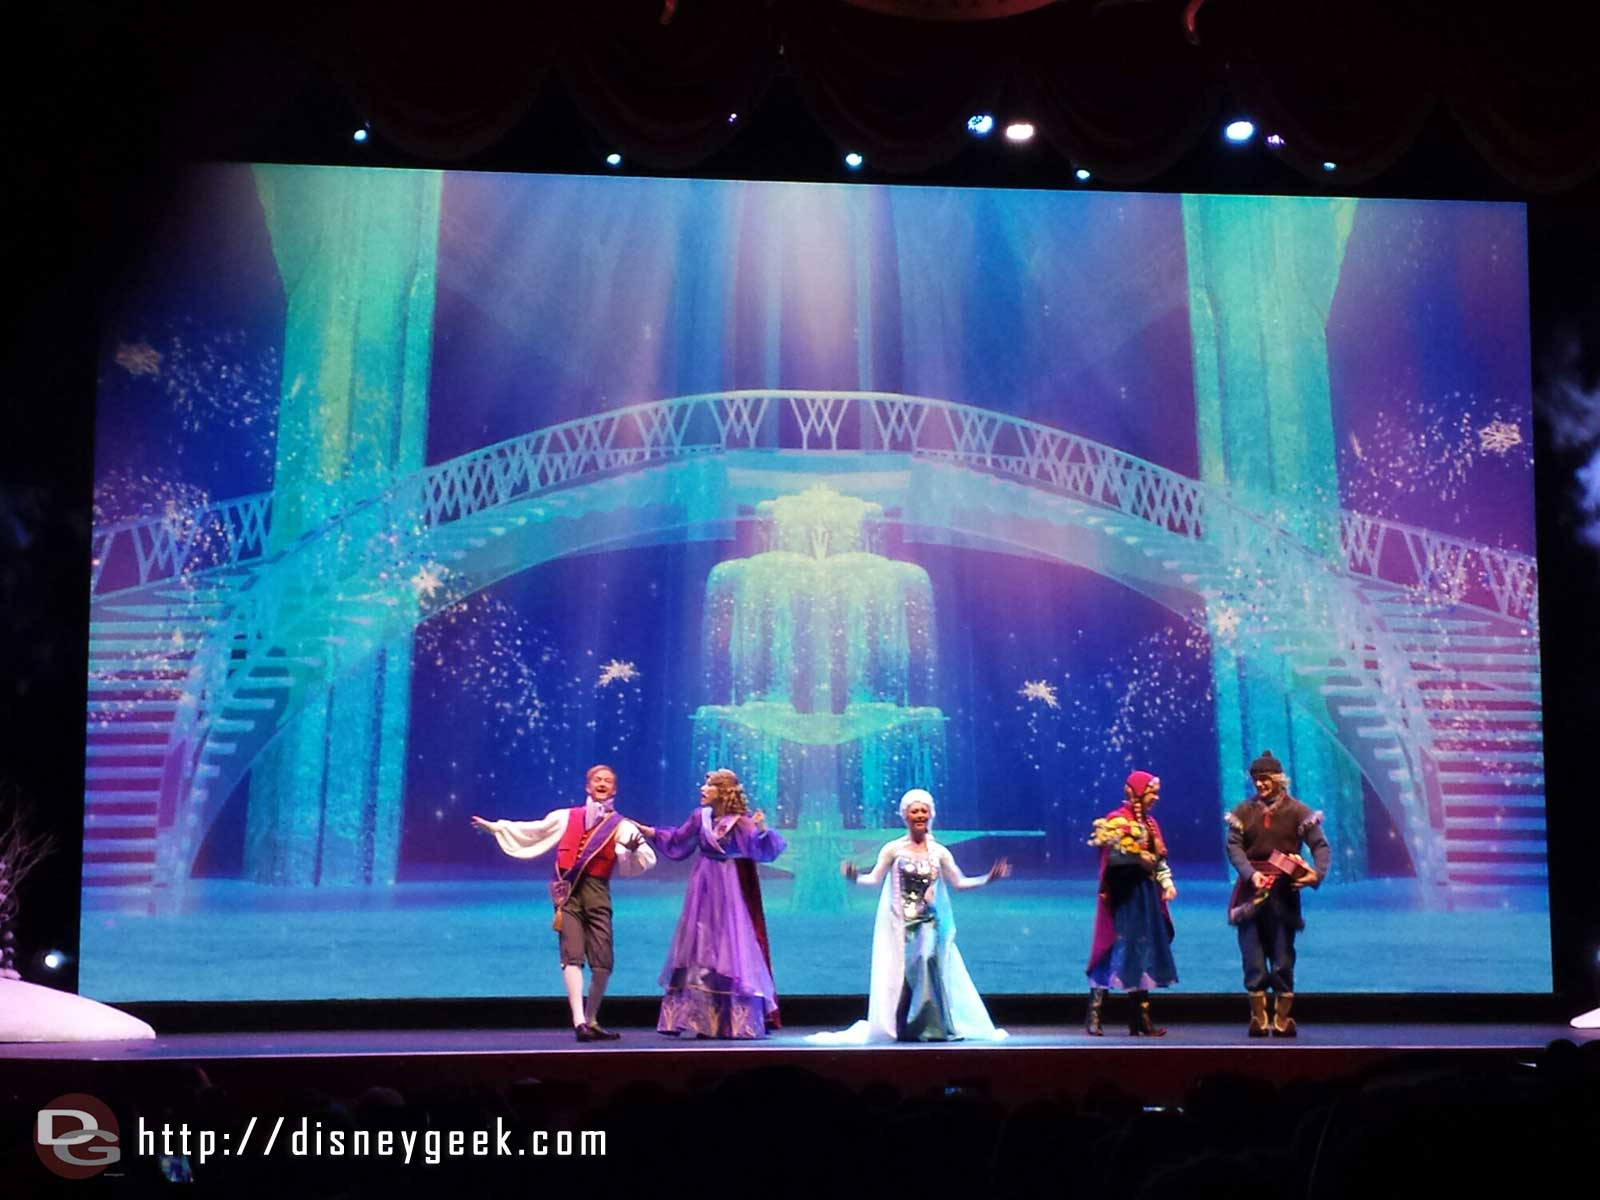 For the First Time in Forever sing along finale #FrozenFun #Disneyland